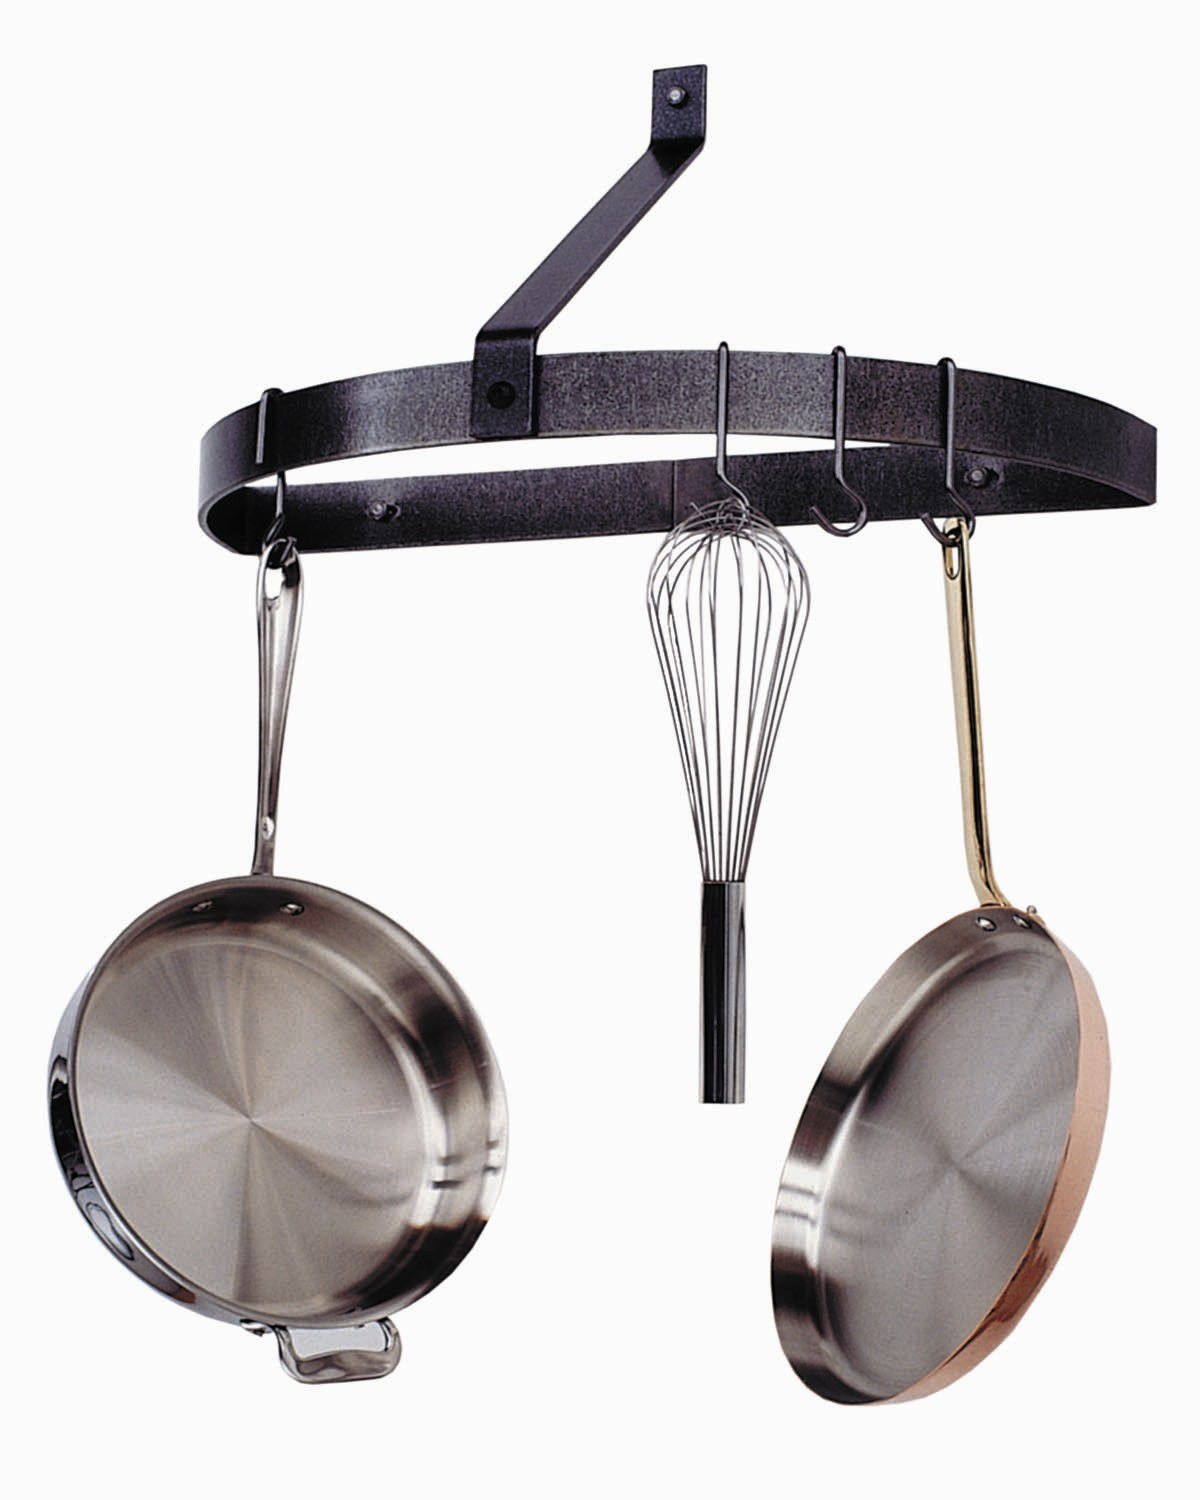 Enclume Hammered Steel Wall Mount Half Circle Pot Rack